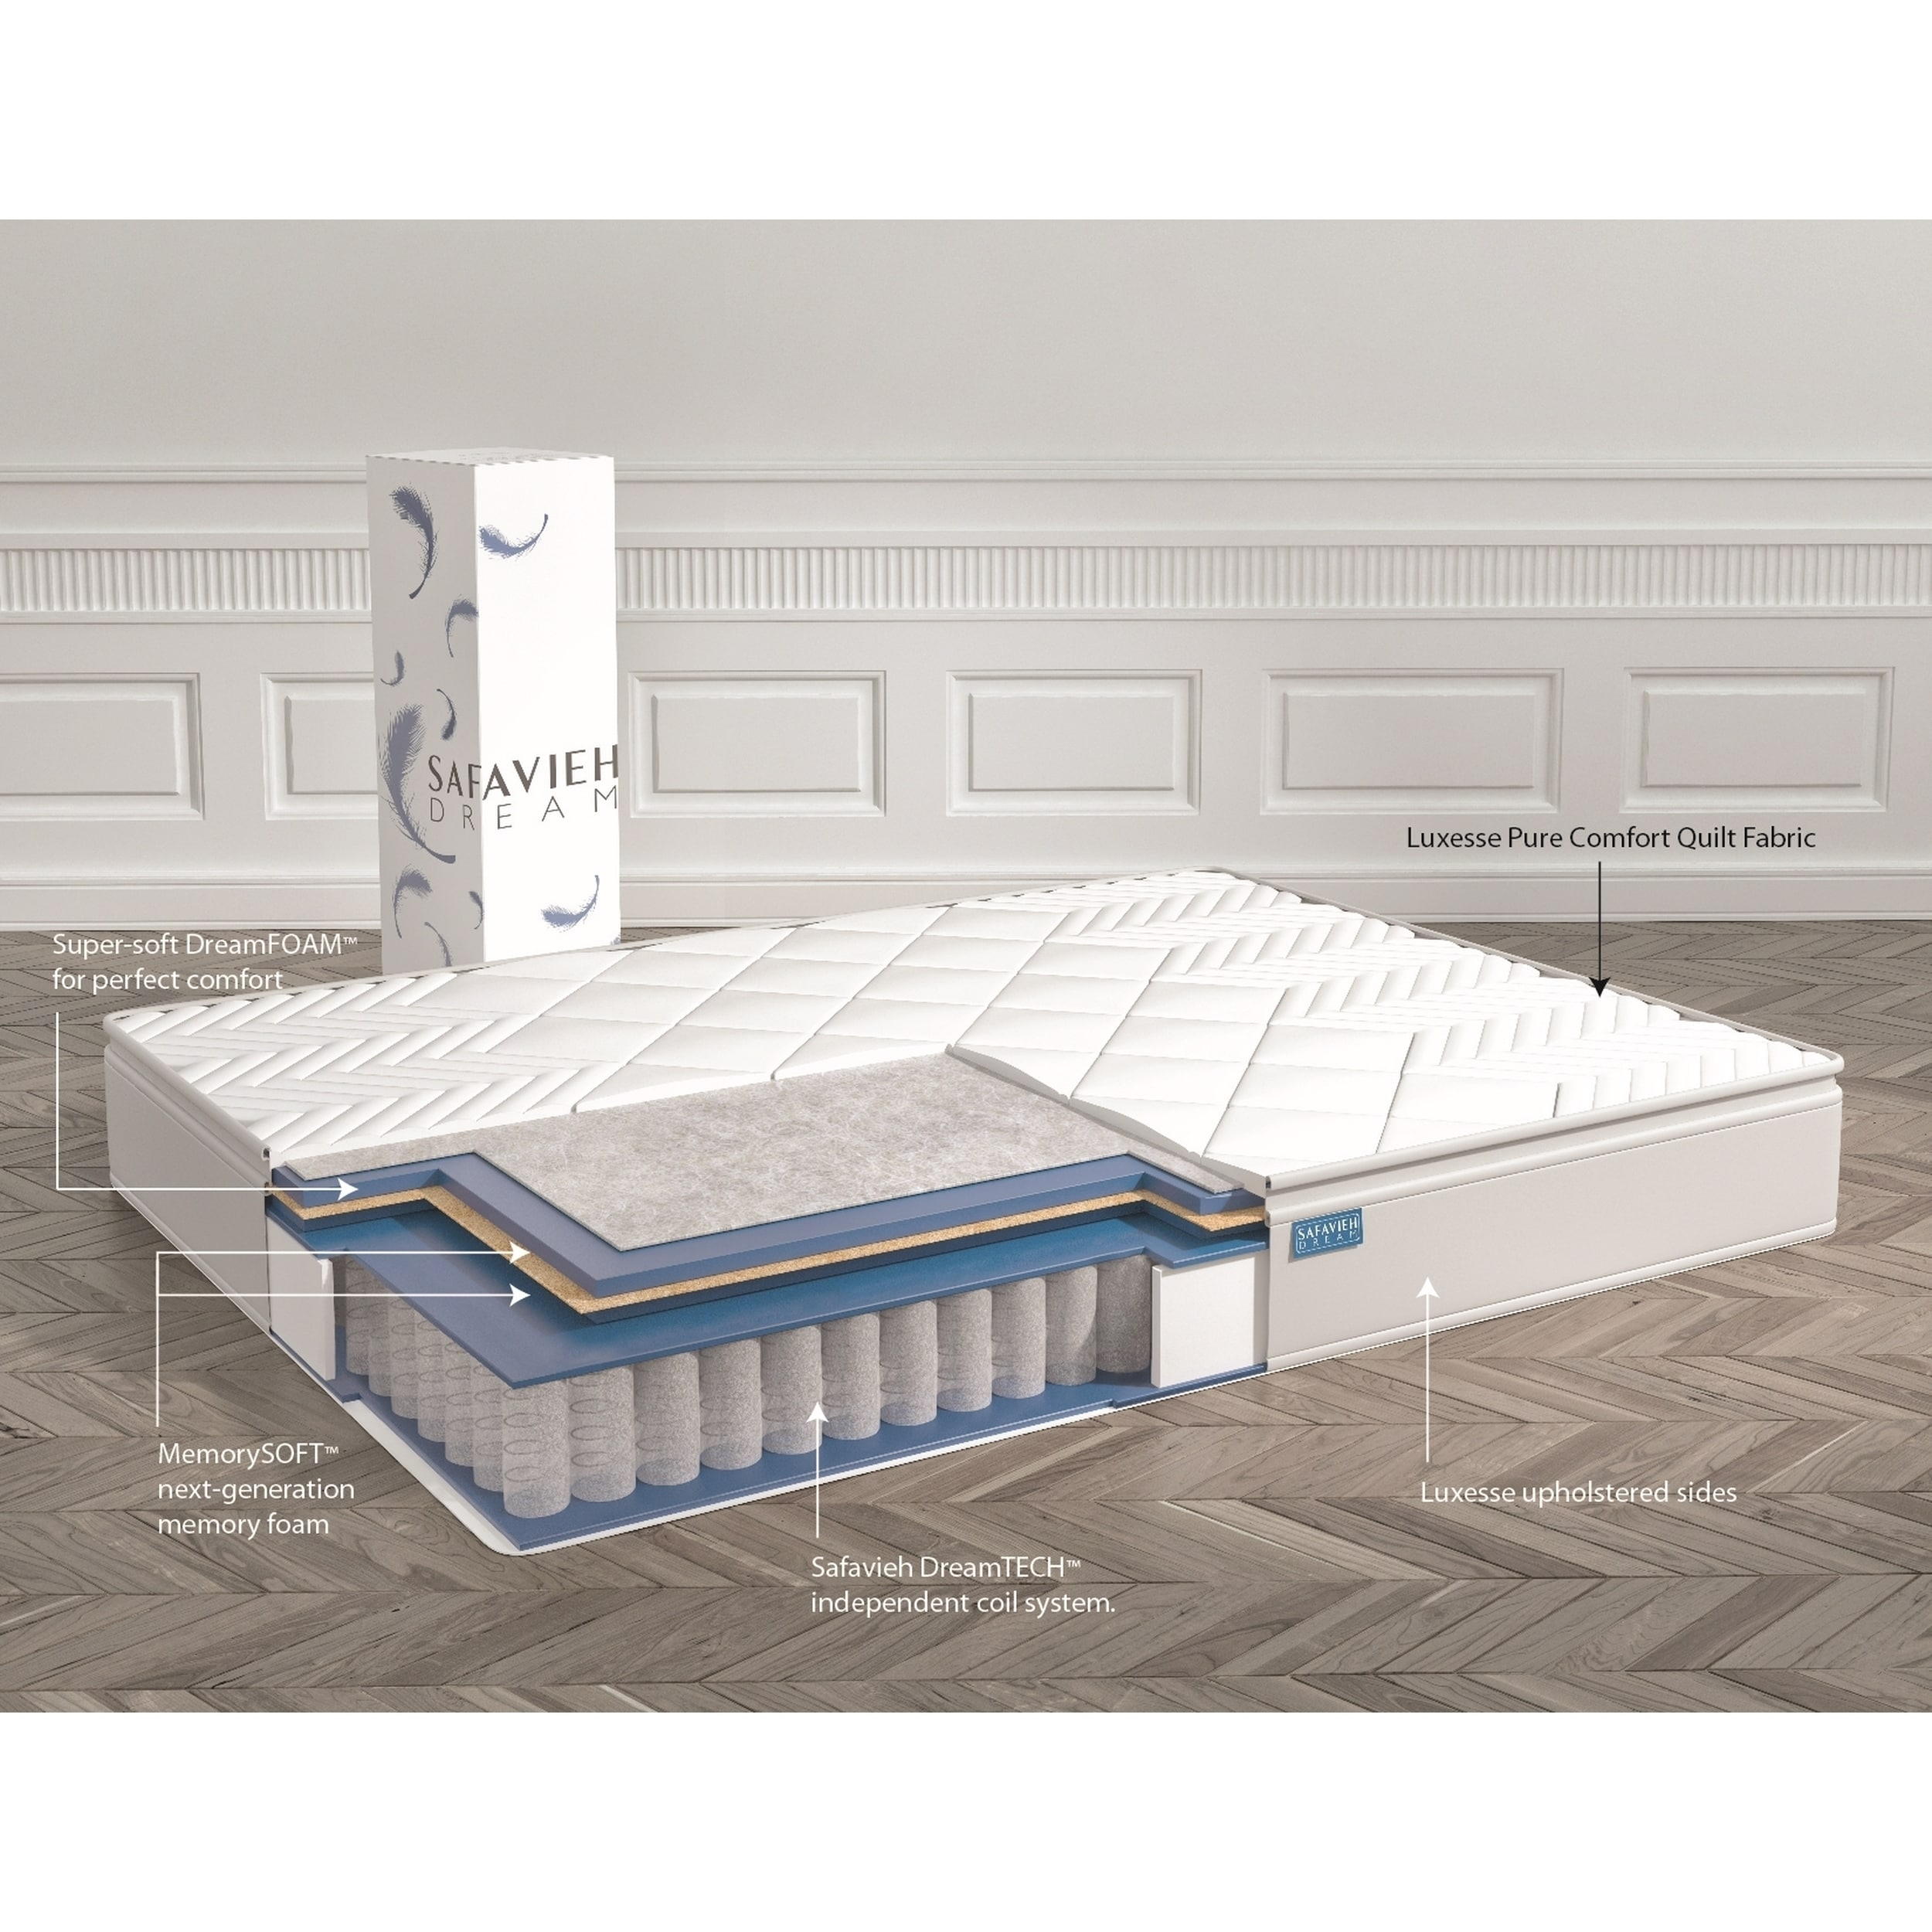 062b7432c02 Shop Safavieh Nirvana 10-inch Euro Pillow-top Spring Queen-size Mattress Bed -in-a-Box - On Sale - Free Shipping Today - Overstock - 9976855